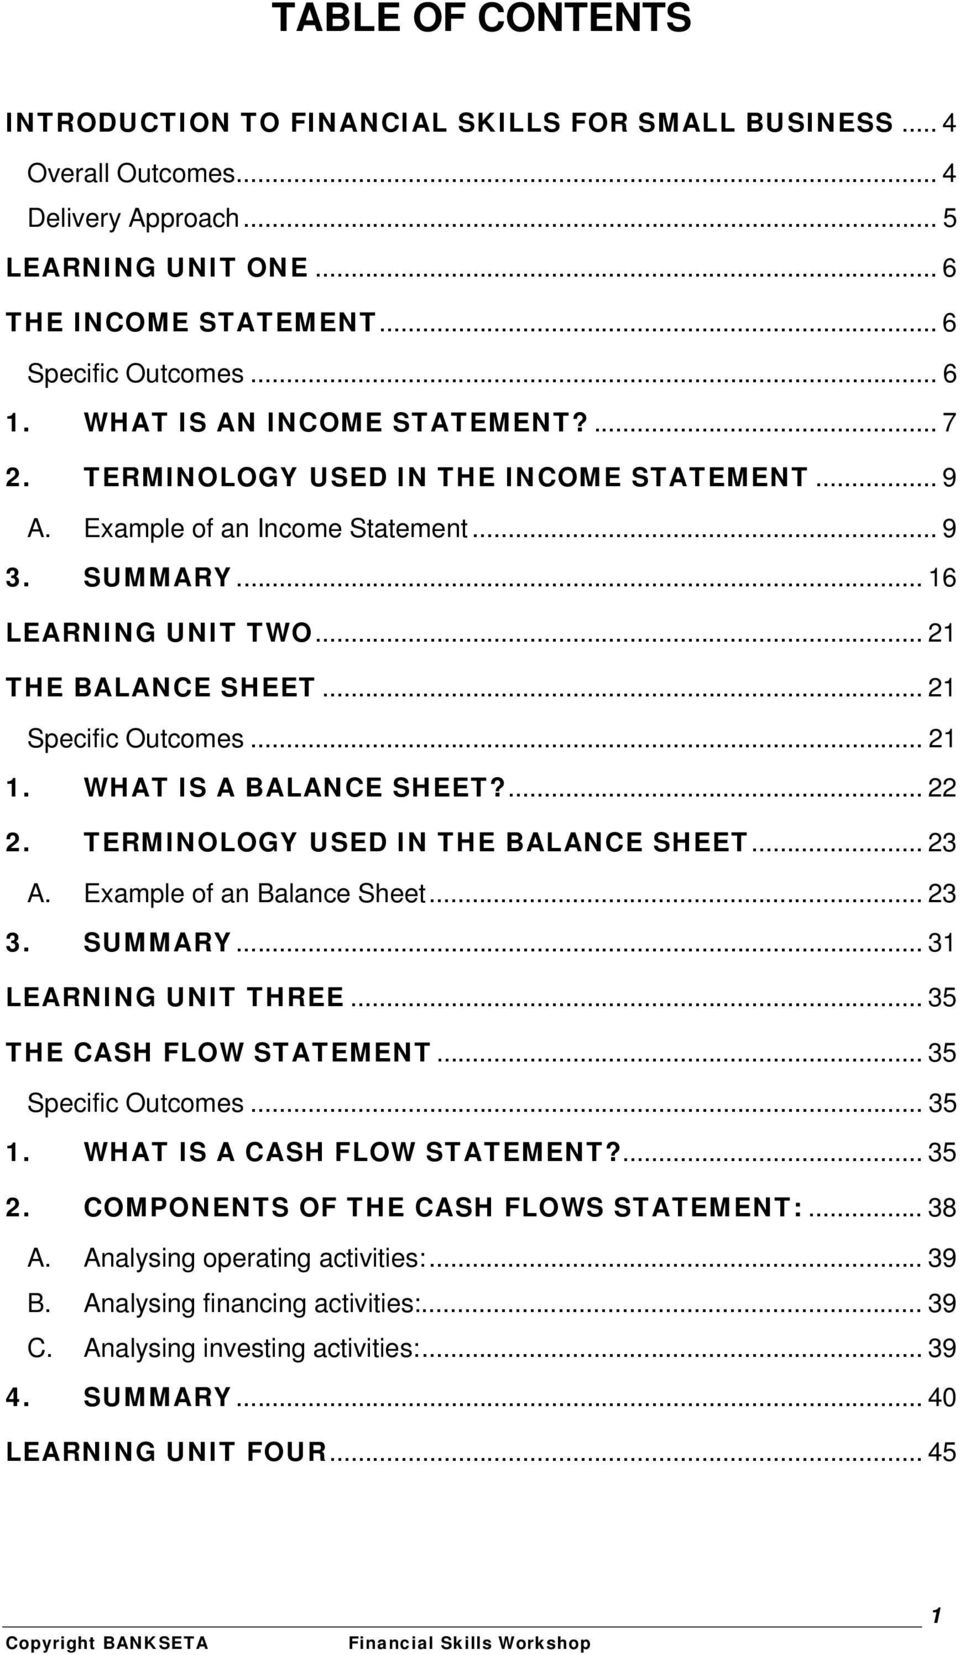 .. 21 Specific Outcomes... 21 1. WHAT IS A BALANCE SHEET?... 22 2. TERMINOLOGY USED IN THE BALANCE SHEET... 23 A. Example of an Balance Sheet... 23 3. SUMMARY... 31 LEARNING UNIT THREE.